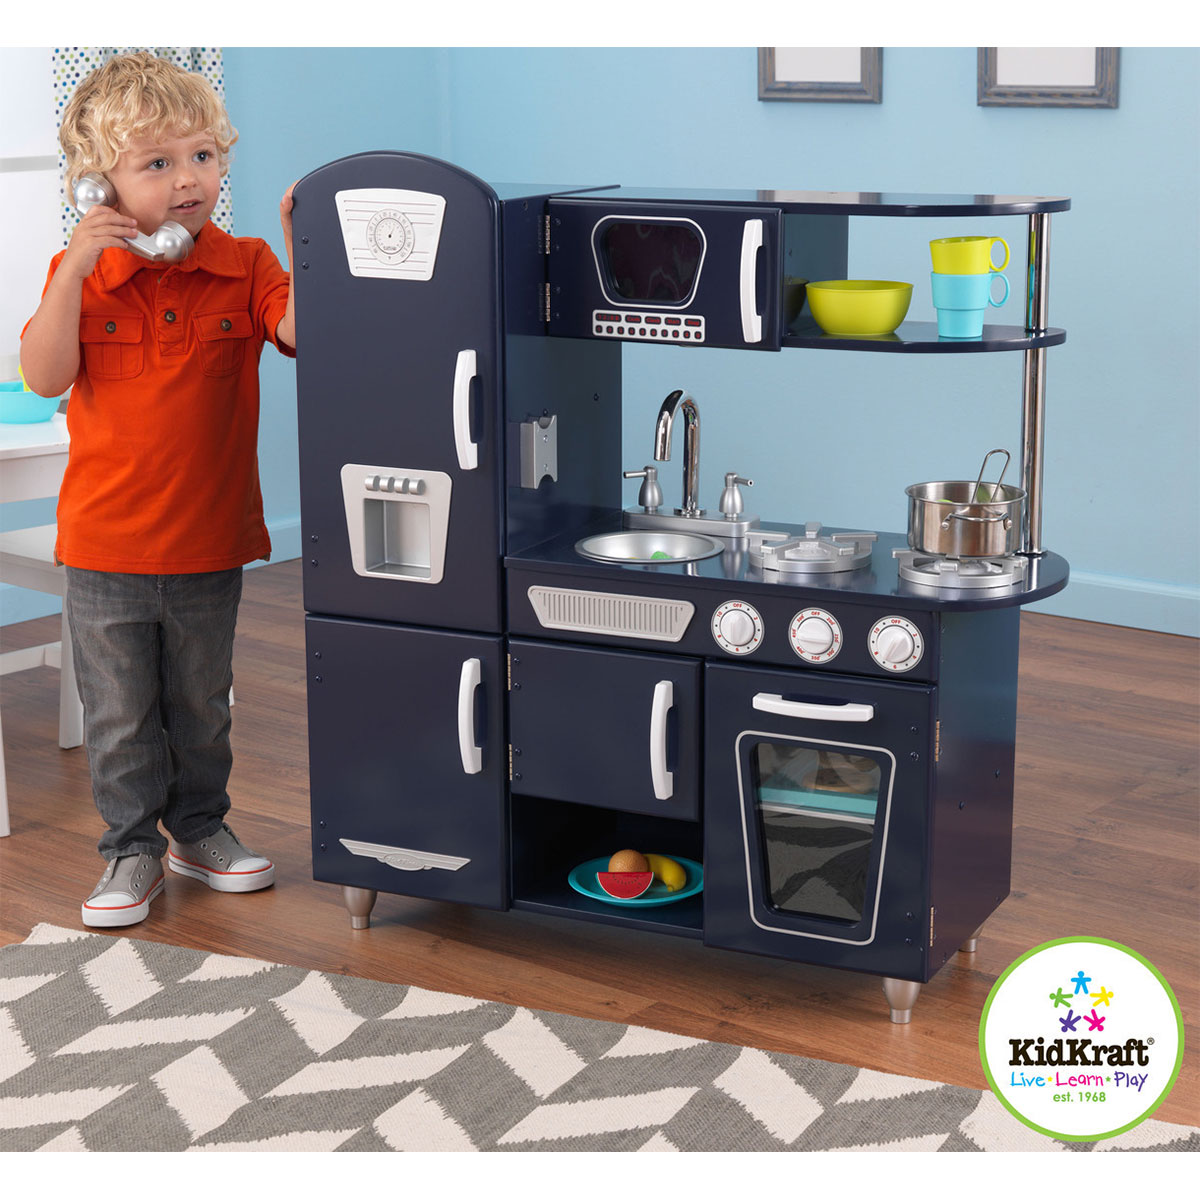 Vintage Kitchen By Kidkraft: KidKraft Navy Vintage Kitchen